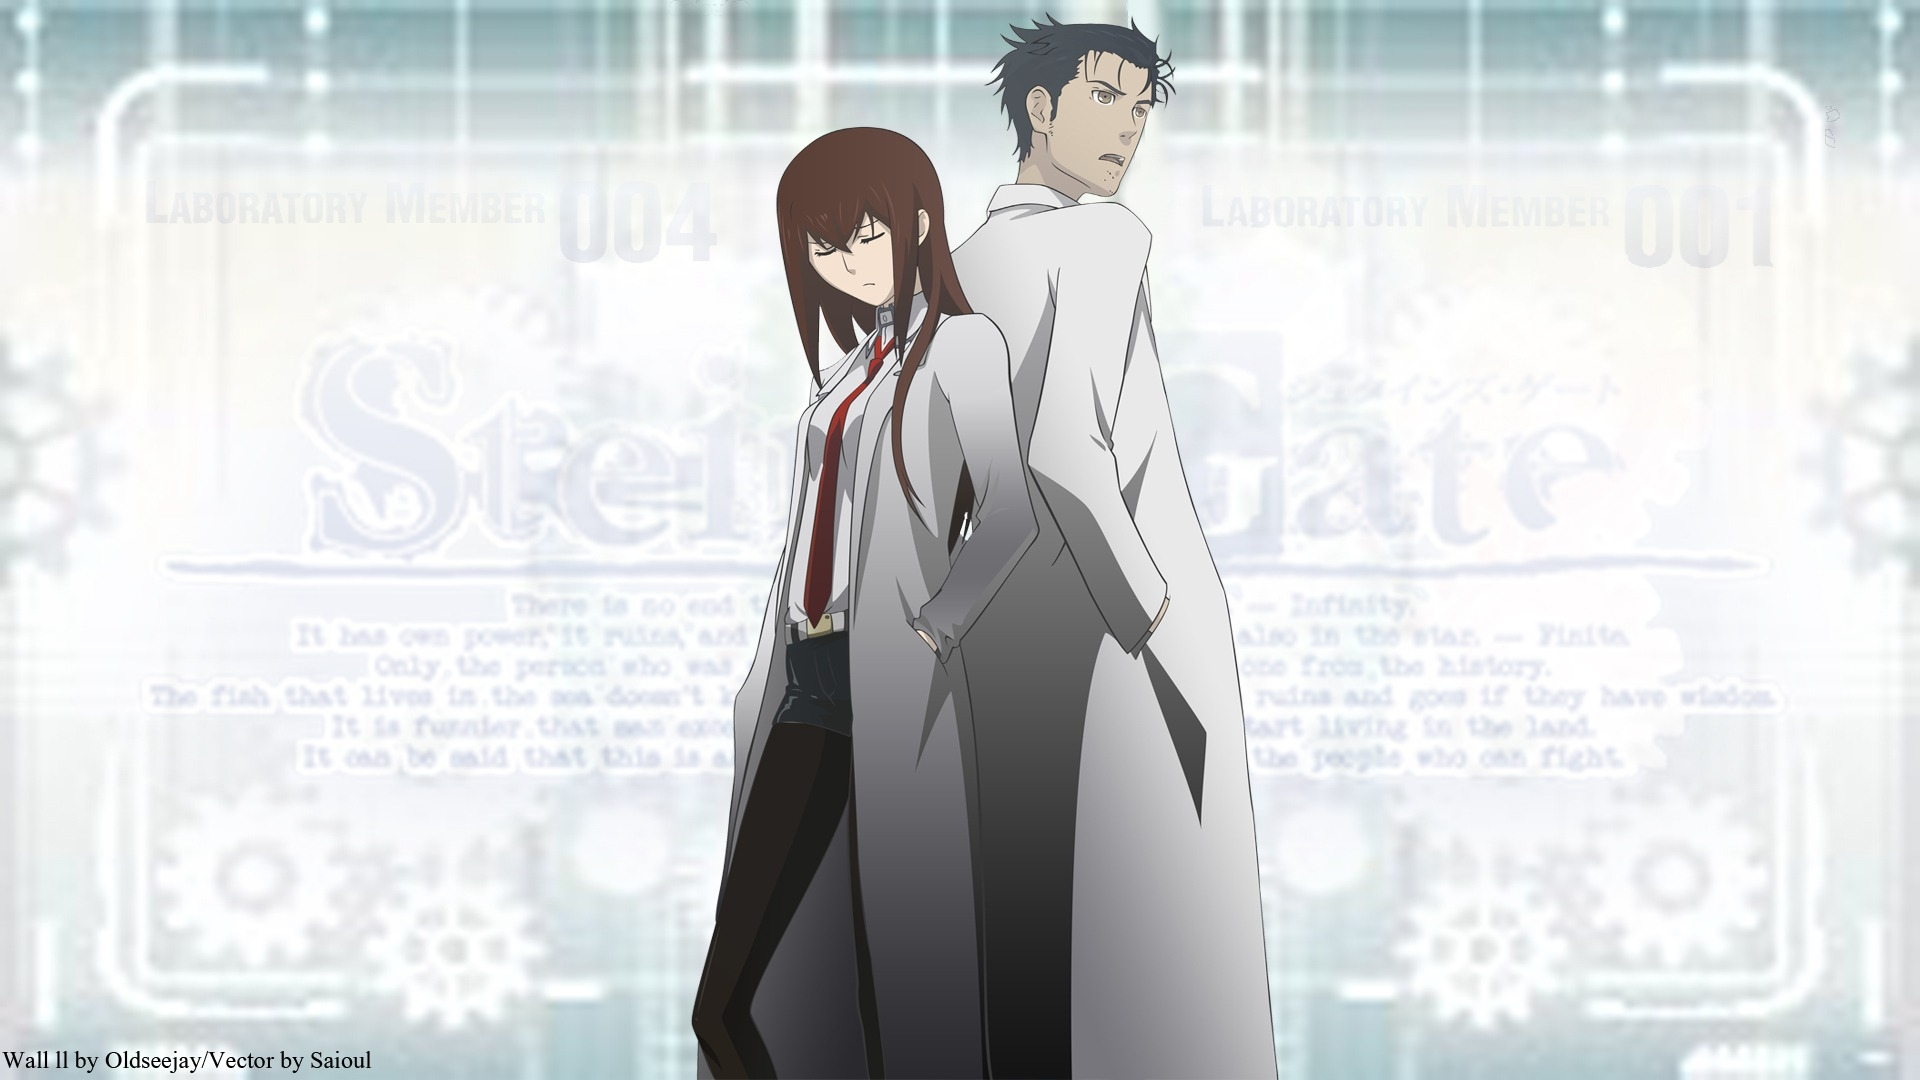 Download-1920x1080-Steins-gate-Boy-Girl-Gown-Tie-wallpaper-wp3404946